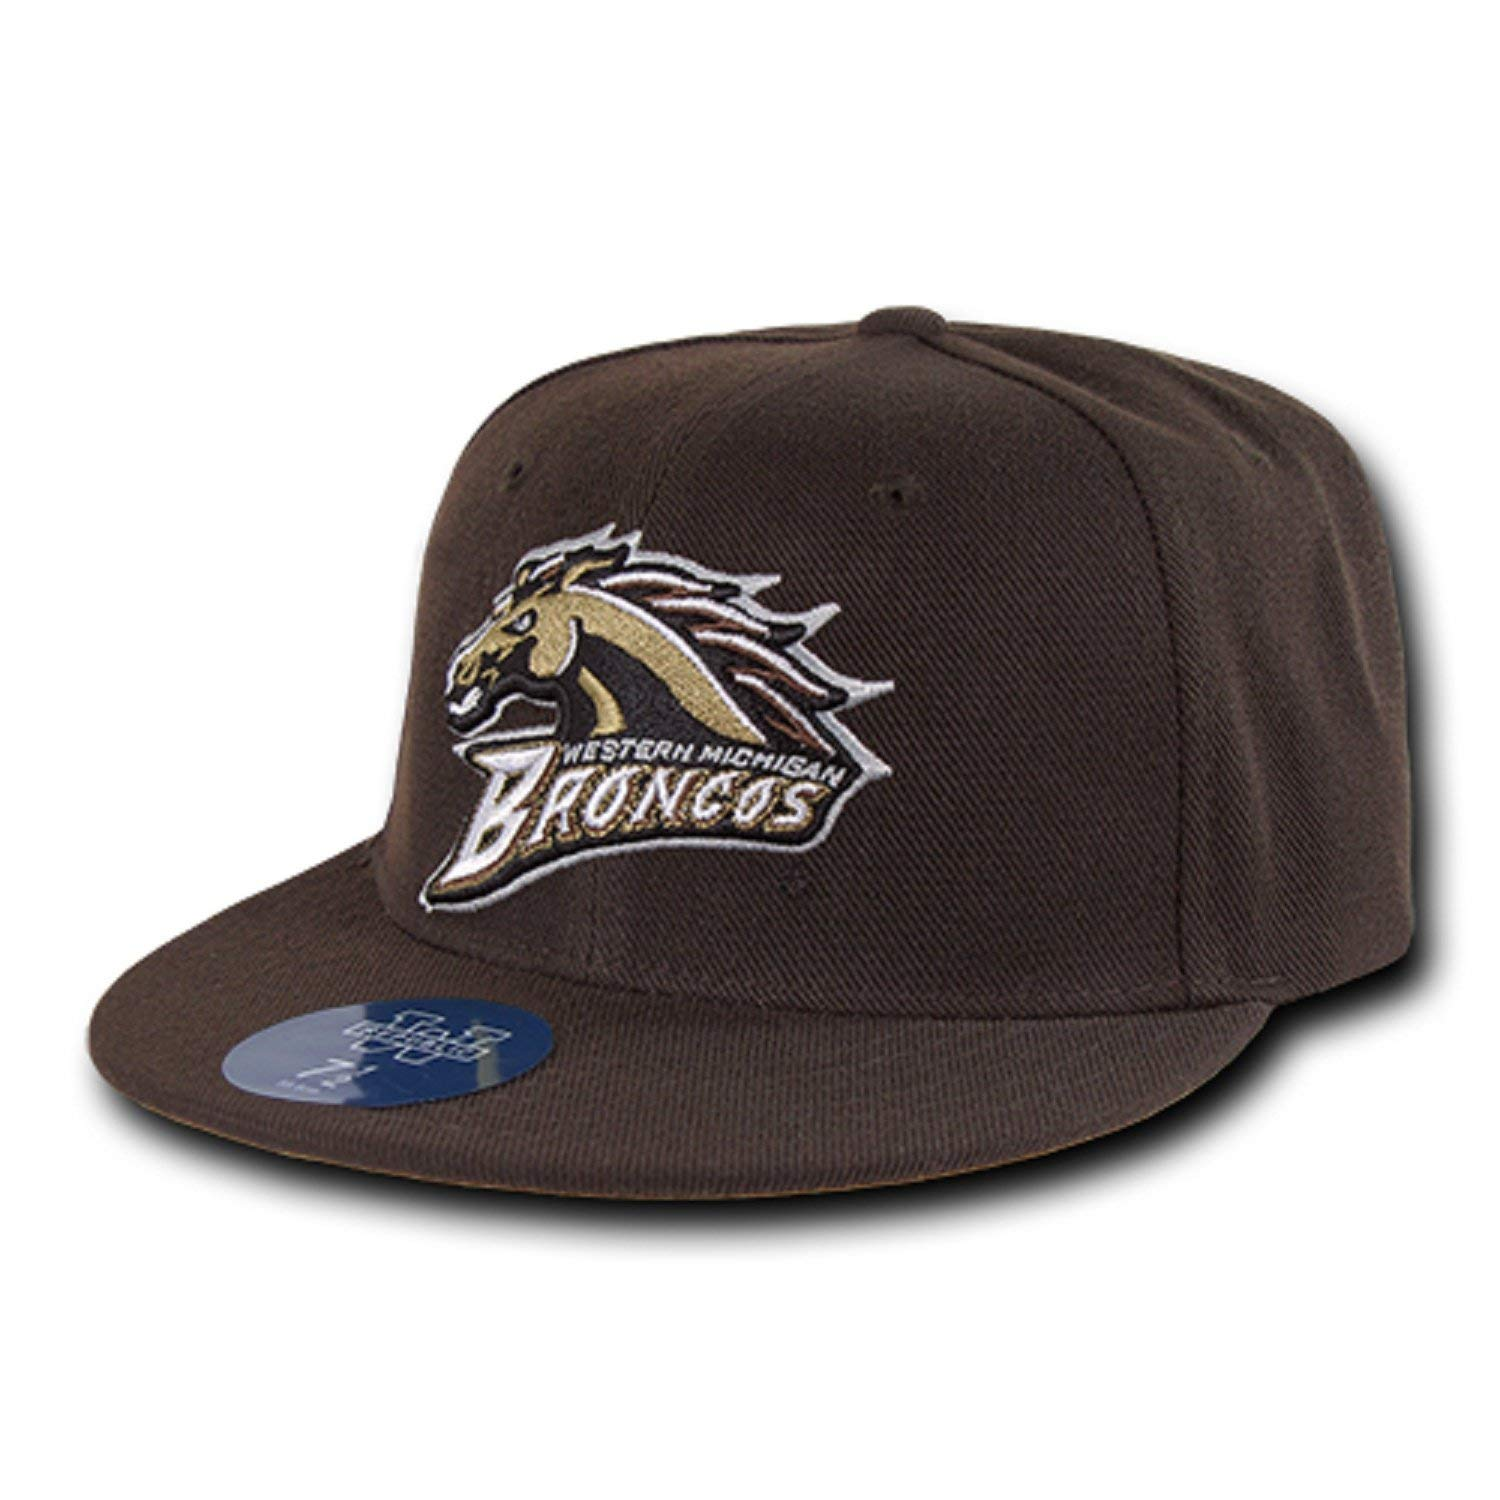 2dadb4c9c70b9 Get Quotations · University of Western Michigan WMICH Broncos NCAA Fitted  Flat Bill Baseball Cap Hat